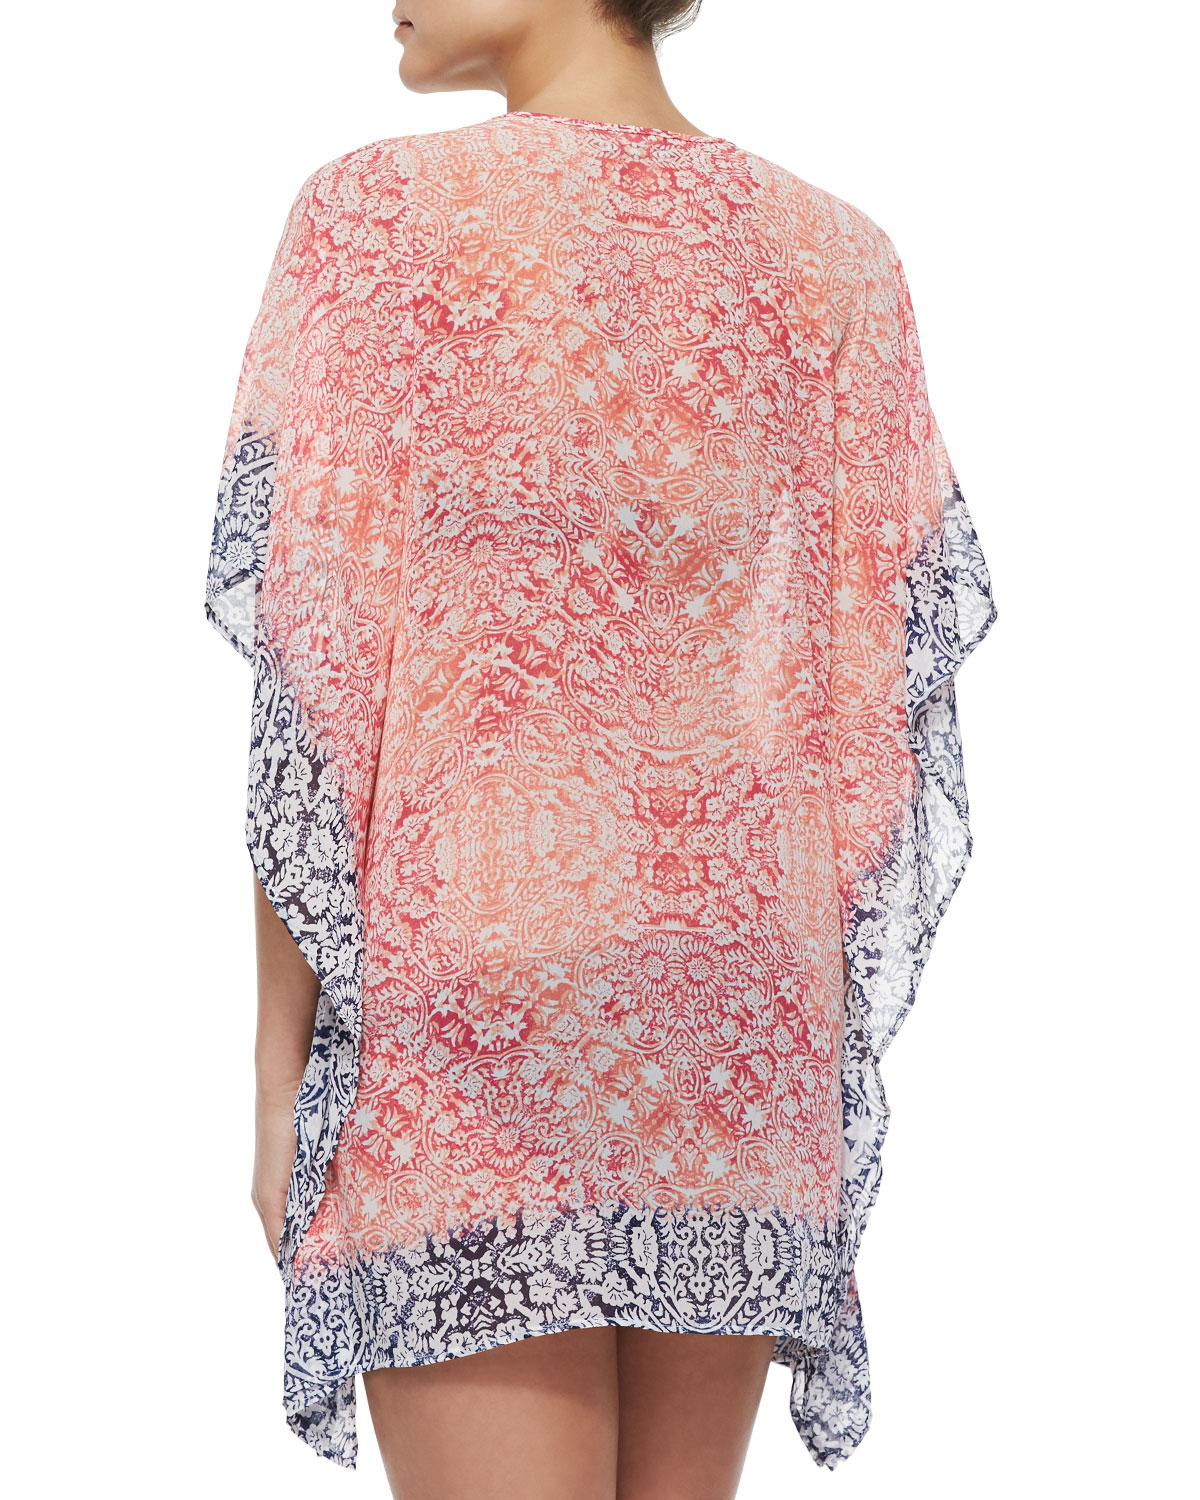 97c5705193 Lyst - Tommy Bahama Asymmetric Printed Tunic in Pink